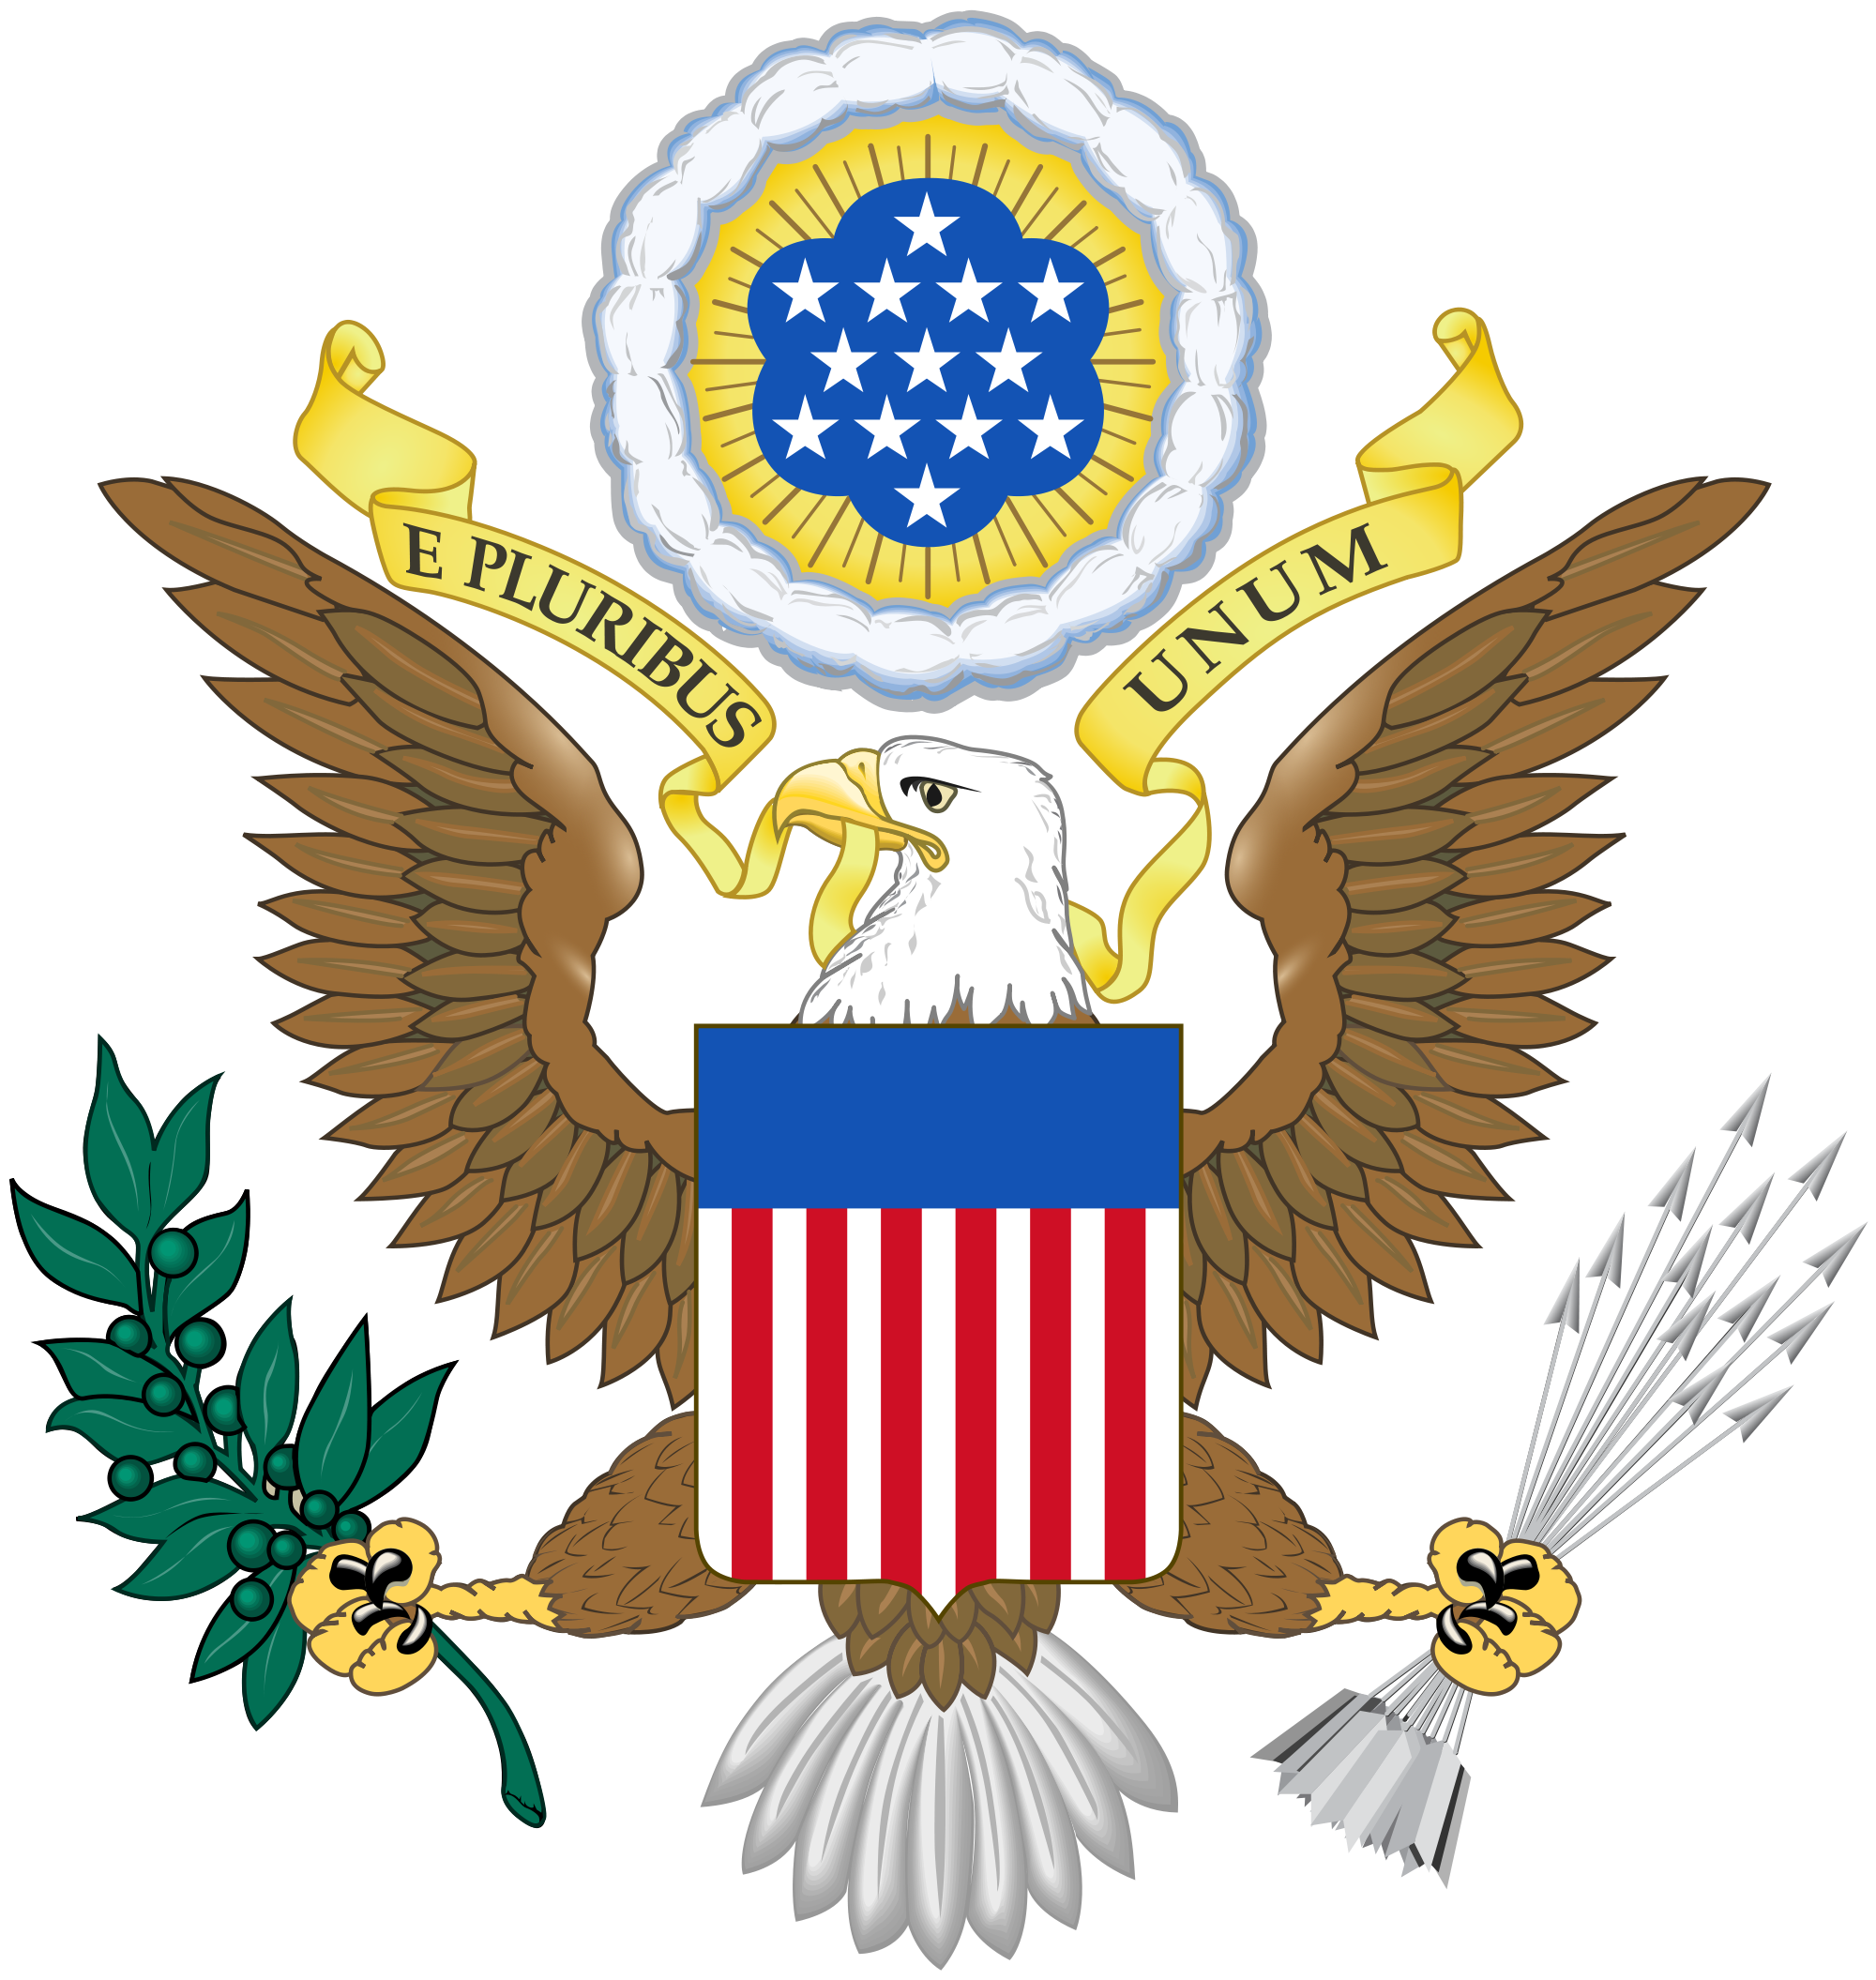 Convention to propose amendments. Justice clipart equal protection